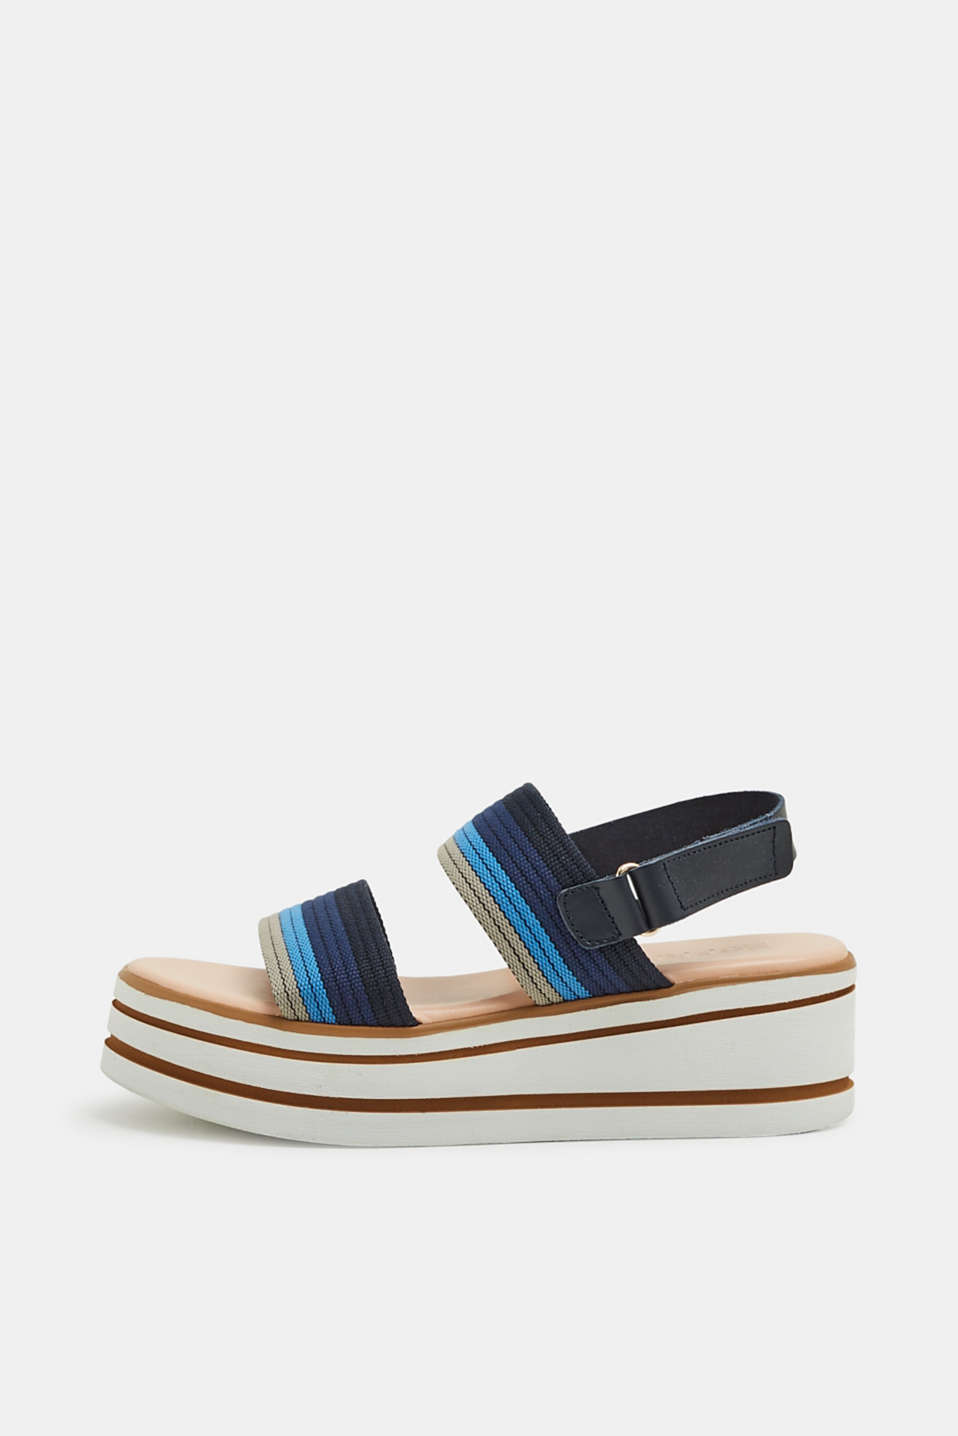 Esprit - Platform sandals with striped textile strap